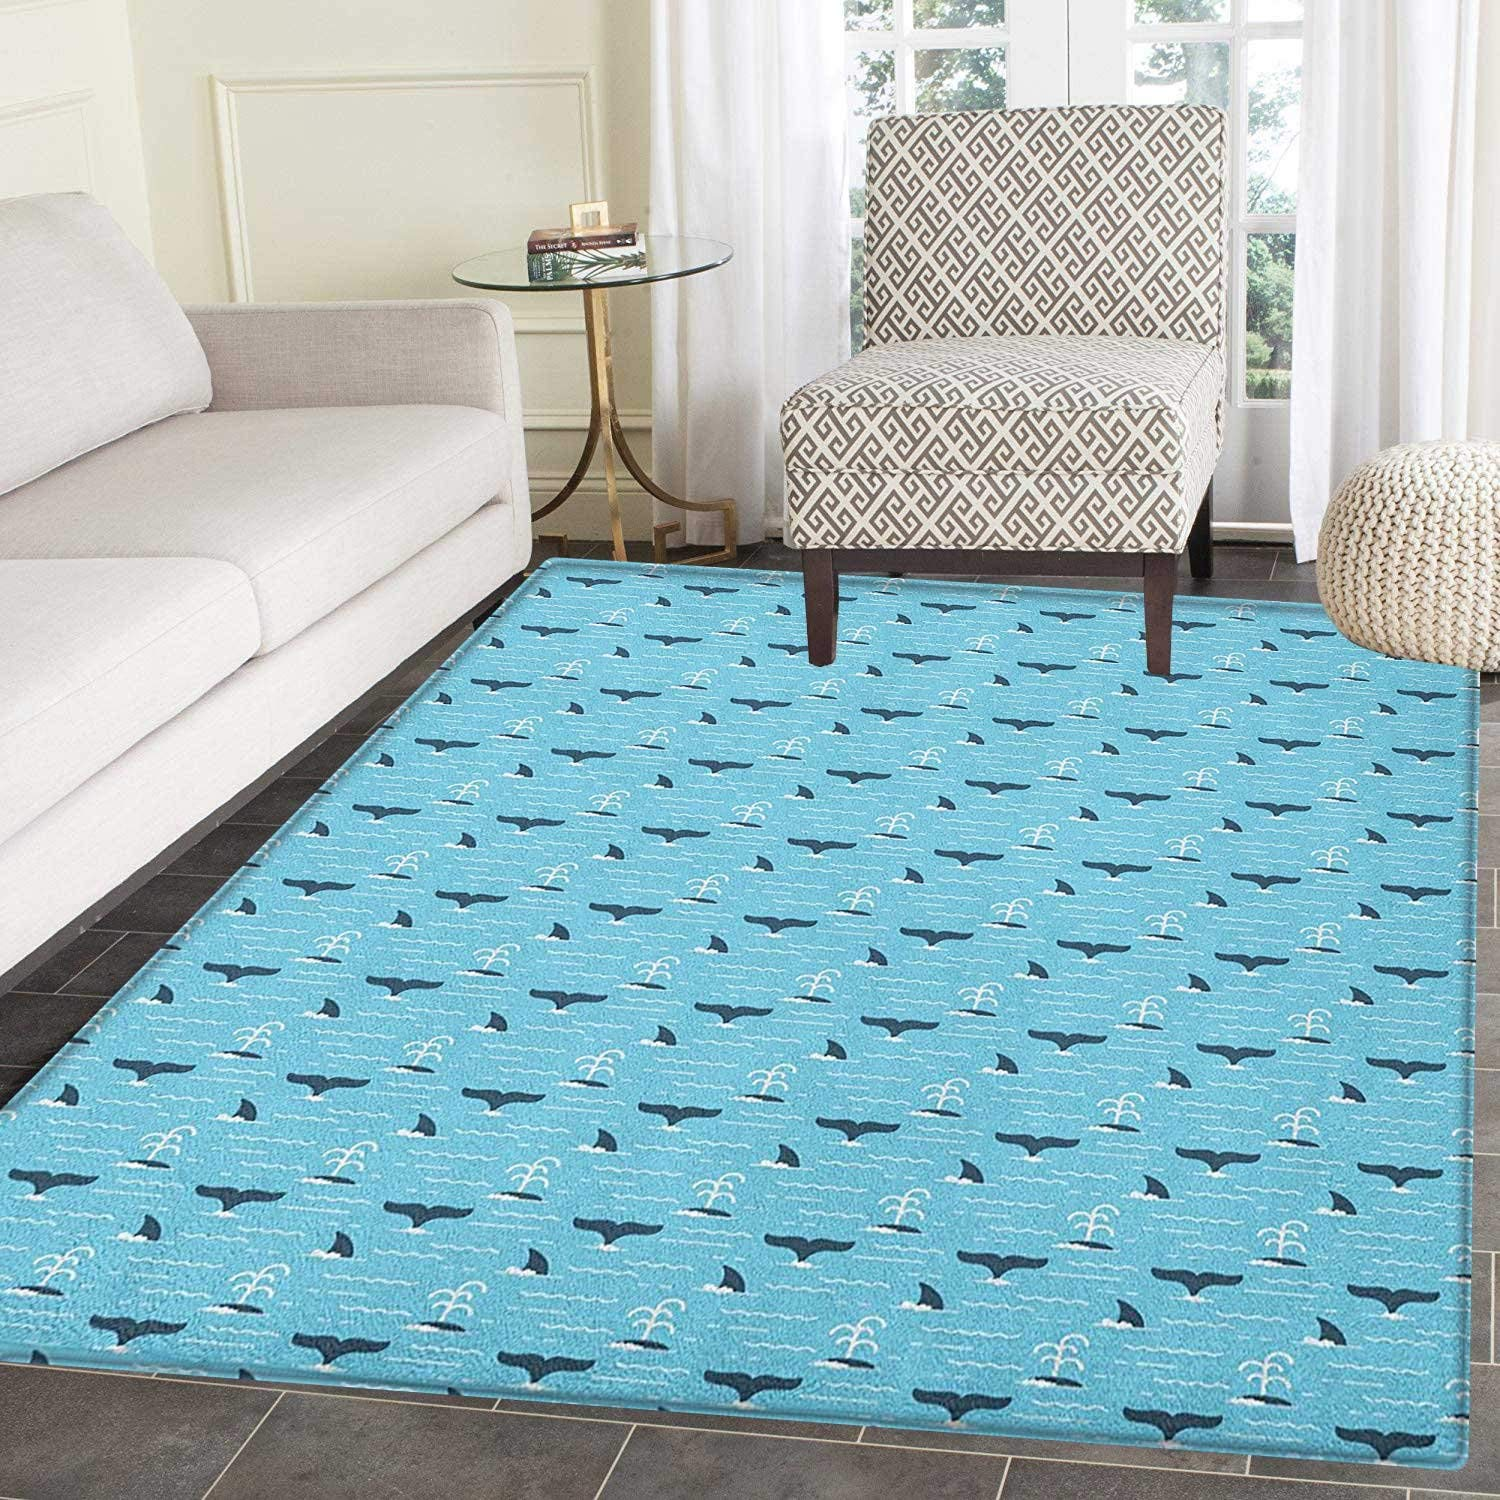 Amazon Com Whale Anti Skid Area Rug Pattern With Whale Fins Over The Water Producing Stream While Swimming Door Mat Increase 3 X4 Teal Pale Blue White Kitchen Dining